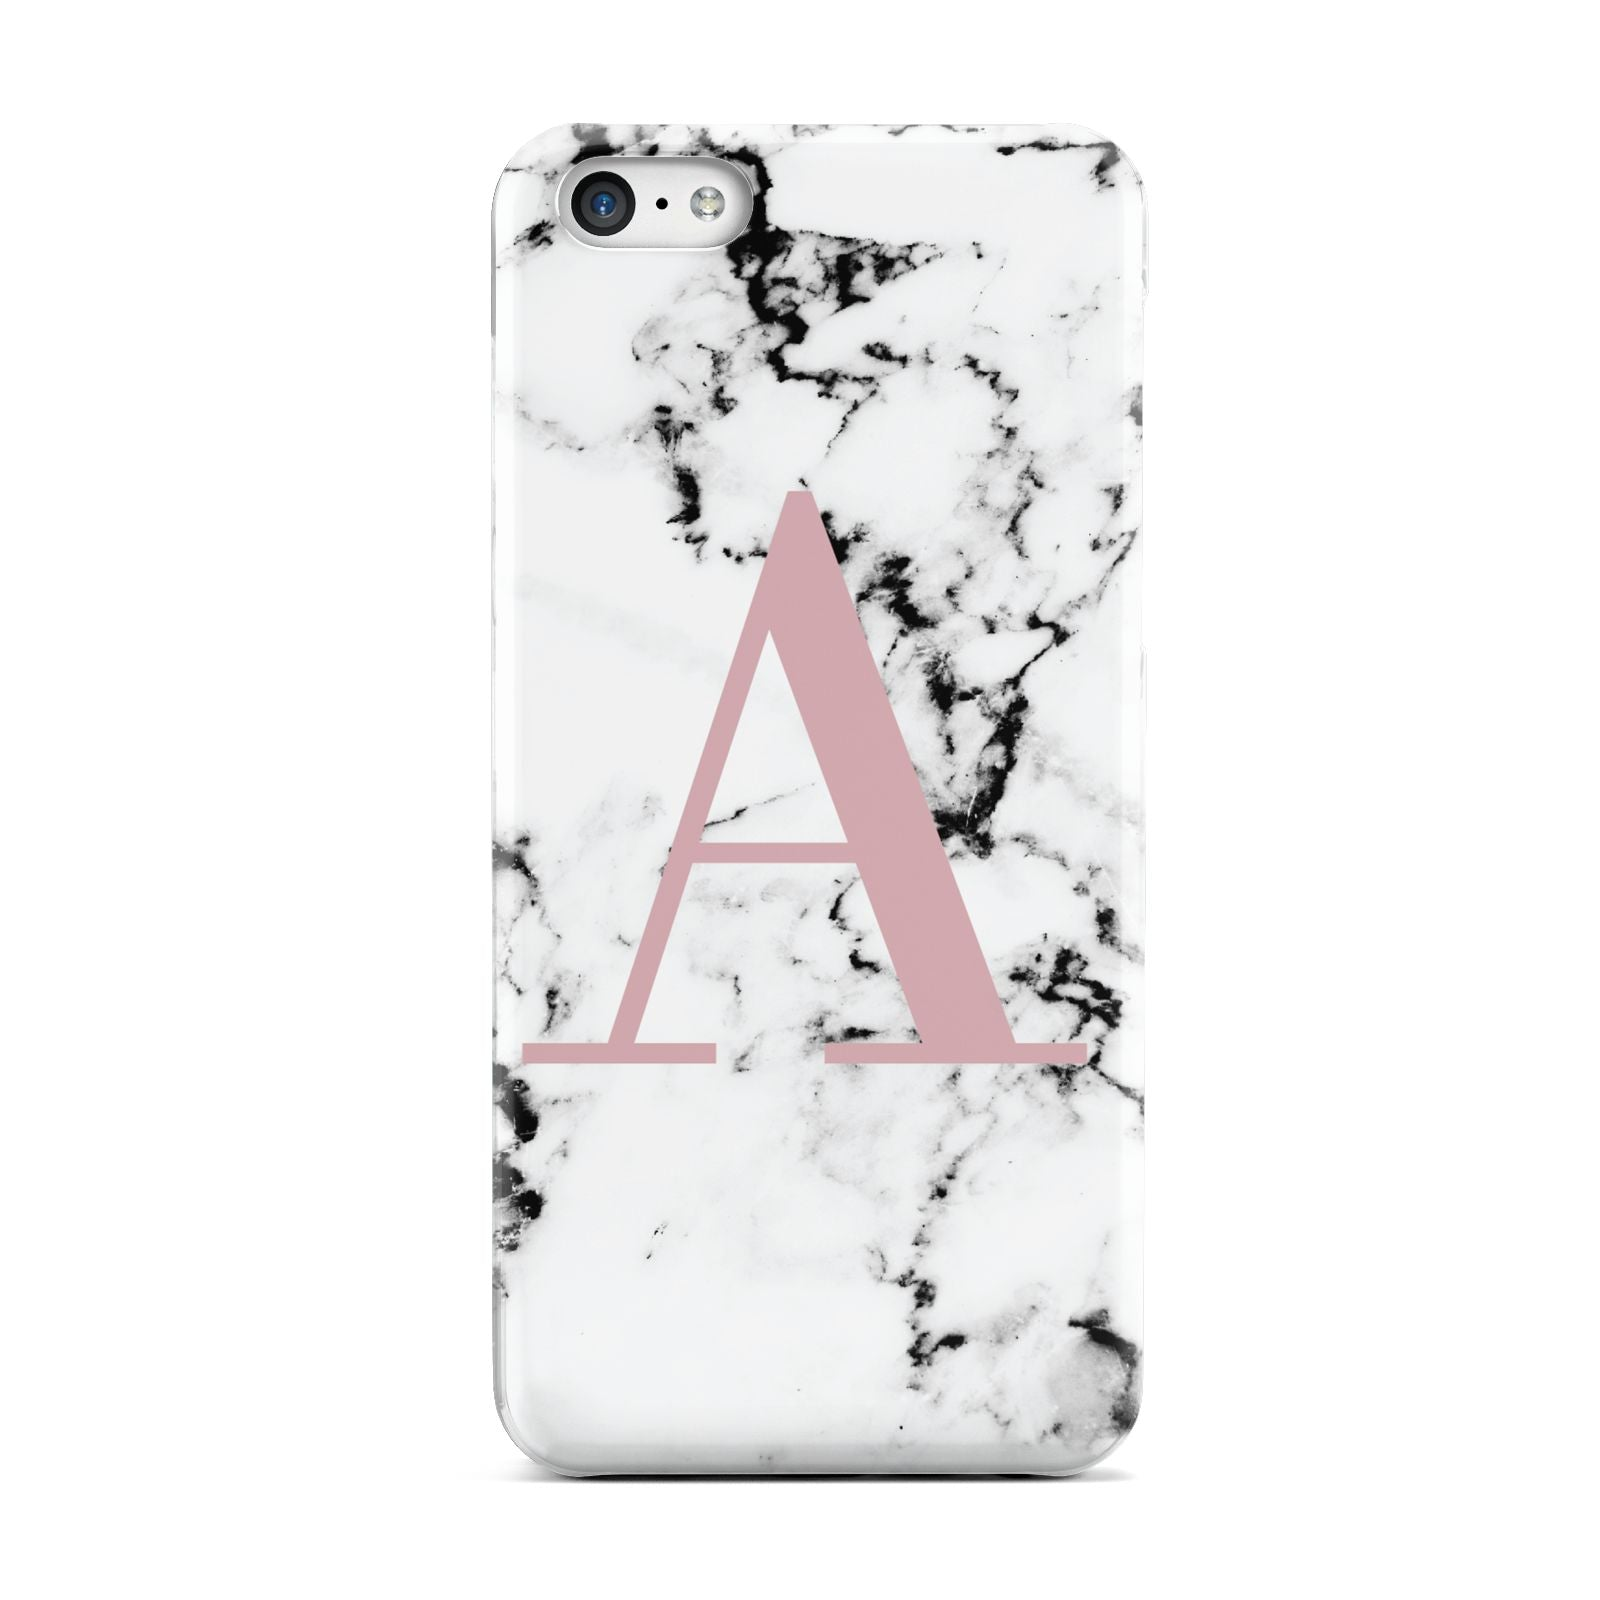 Marble Effect Pink Initial Personalised Apple iPhone 5c Case